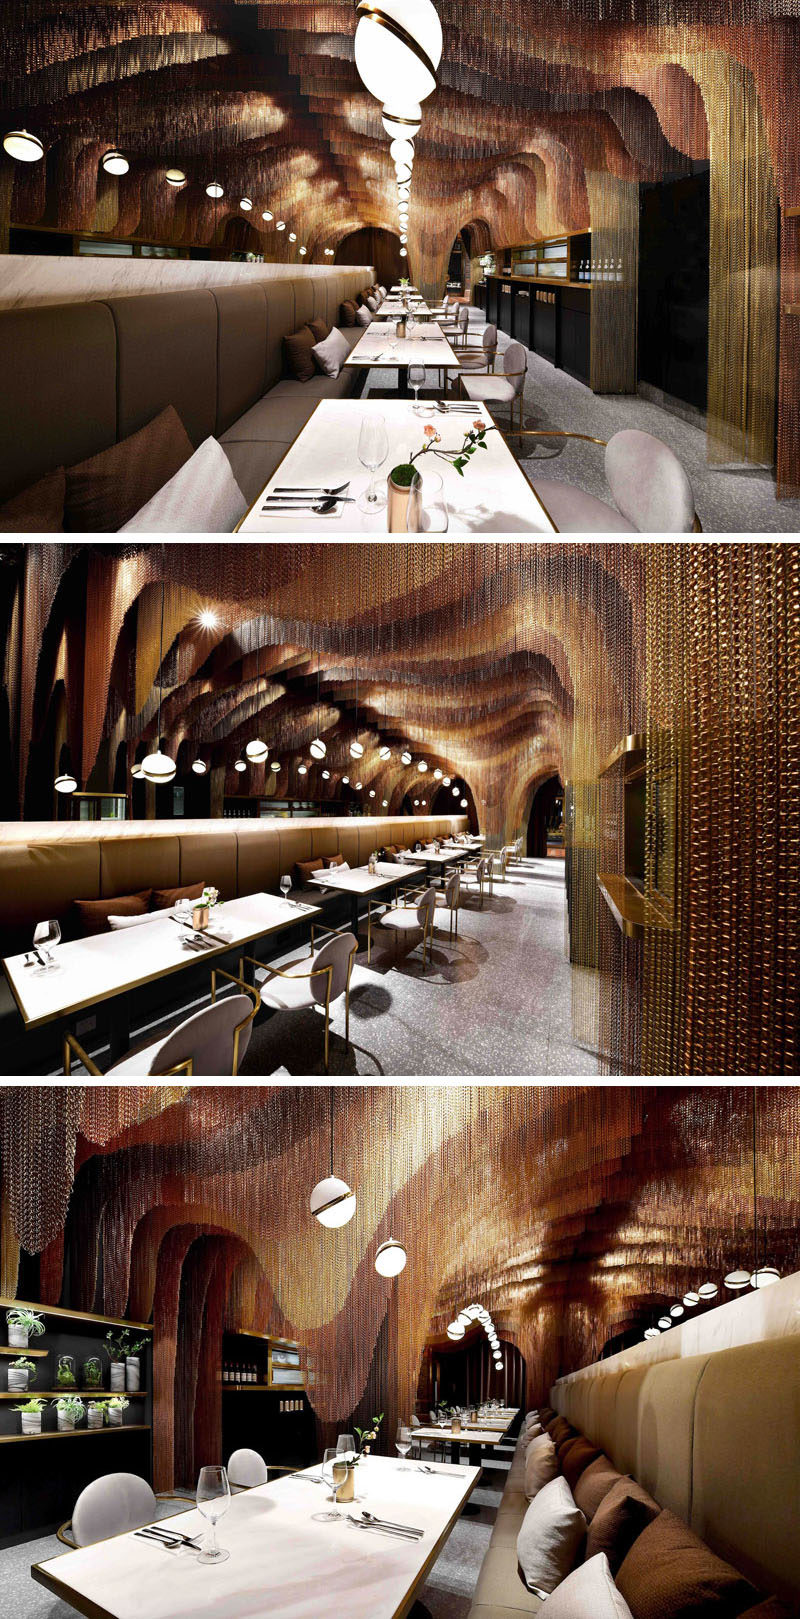 This modern restaurant features approximately 35,000 meters of gold chains that make up sculptural layers, mimicking the mountainous tea fields in China. #RestaurantDesign #ModernRestaurant #MetallicChains #InteriorDesign